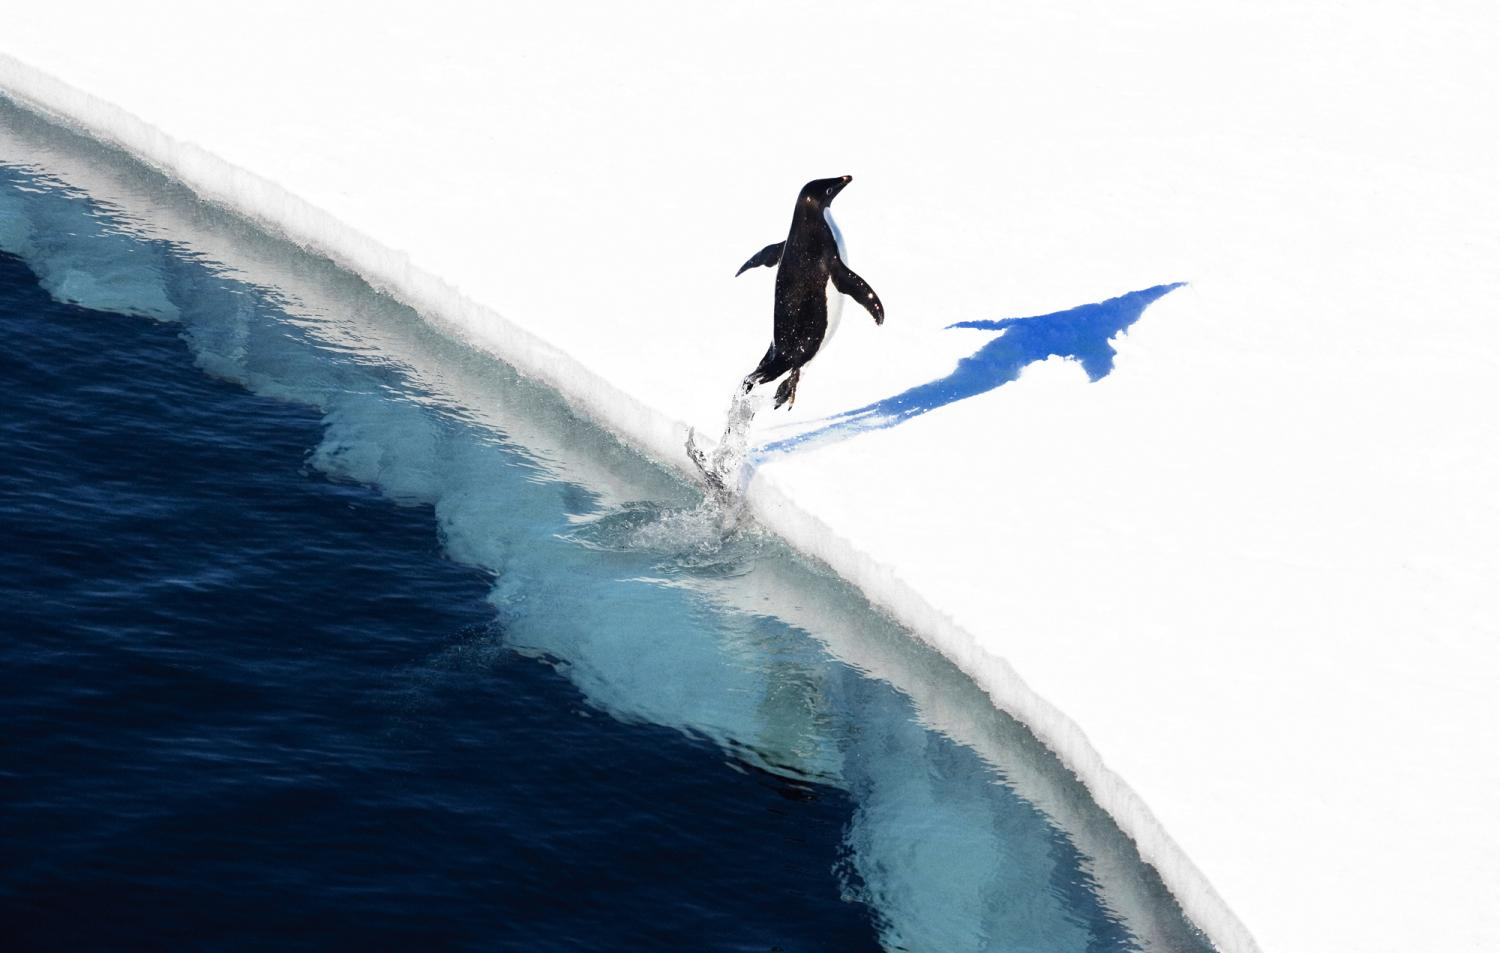 Adelie penguin jumping out of sea onto ice.